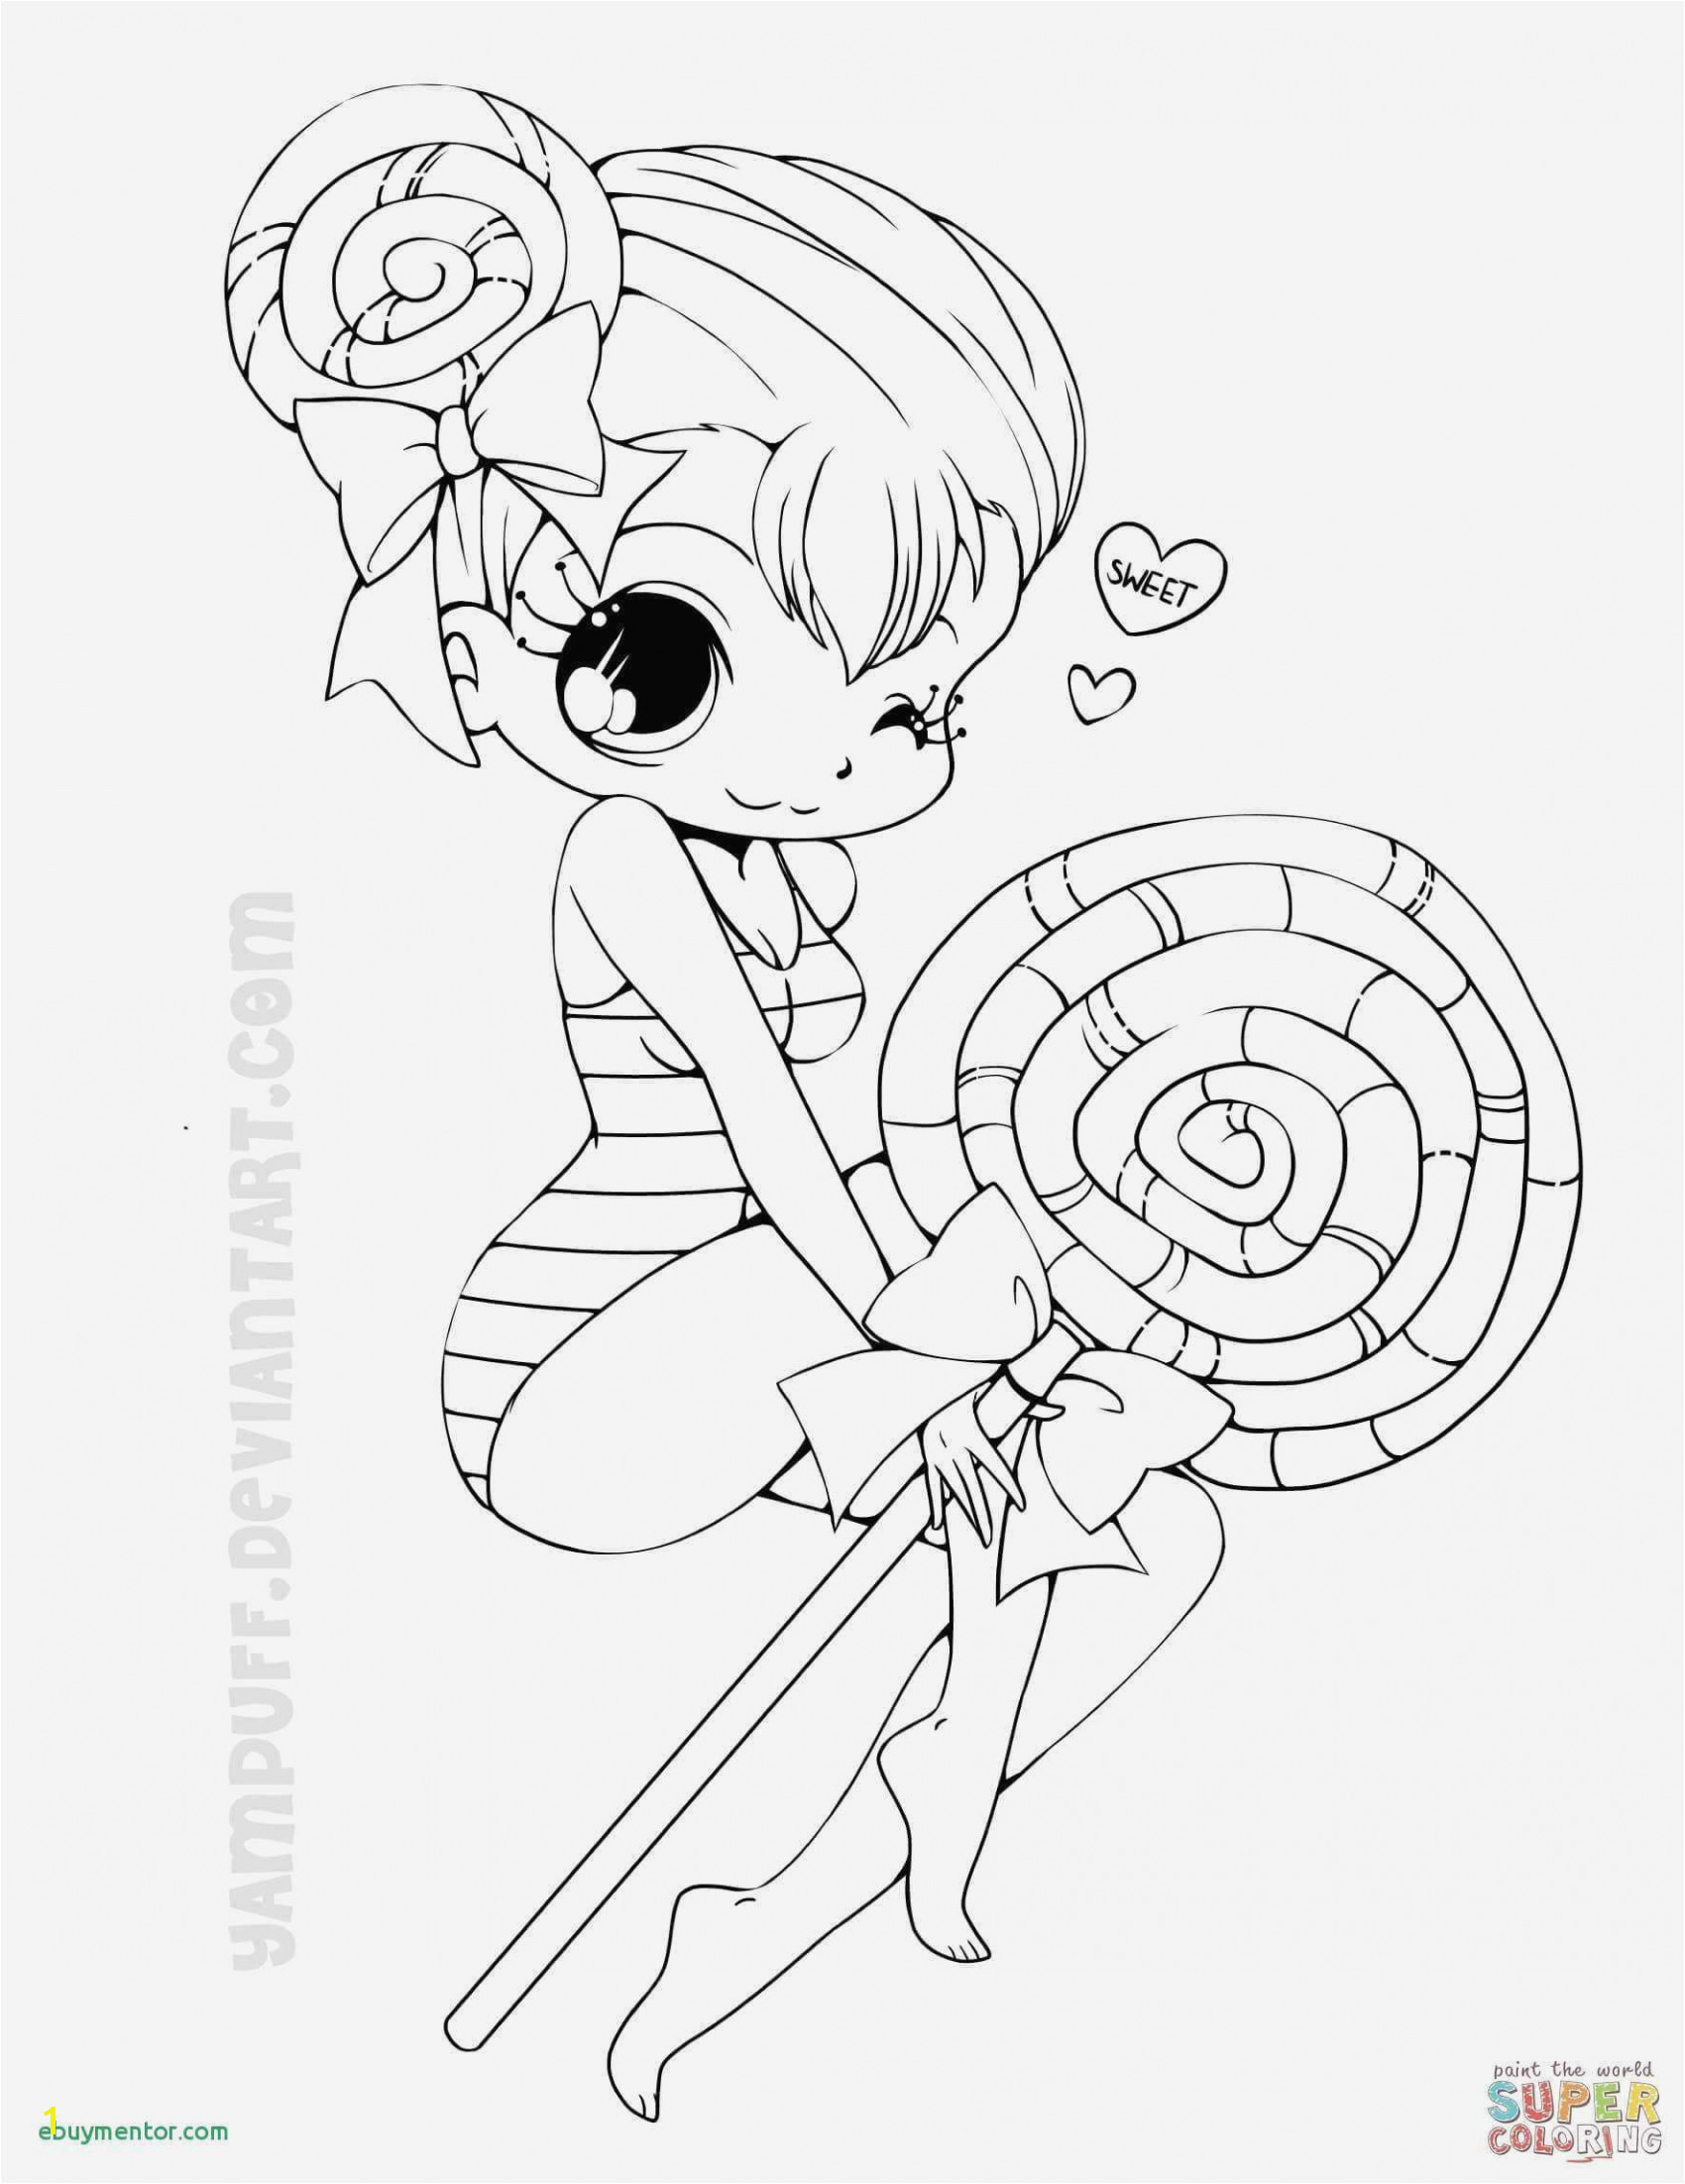 Anime Coloring Pages Best Witch Coloring Page Inspirational Crayola Pages 0d Coloring Page Inspirational Chibi Anime 27 Moses and the Burning Bush